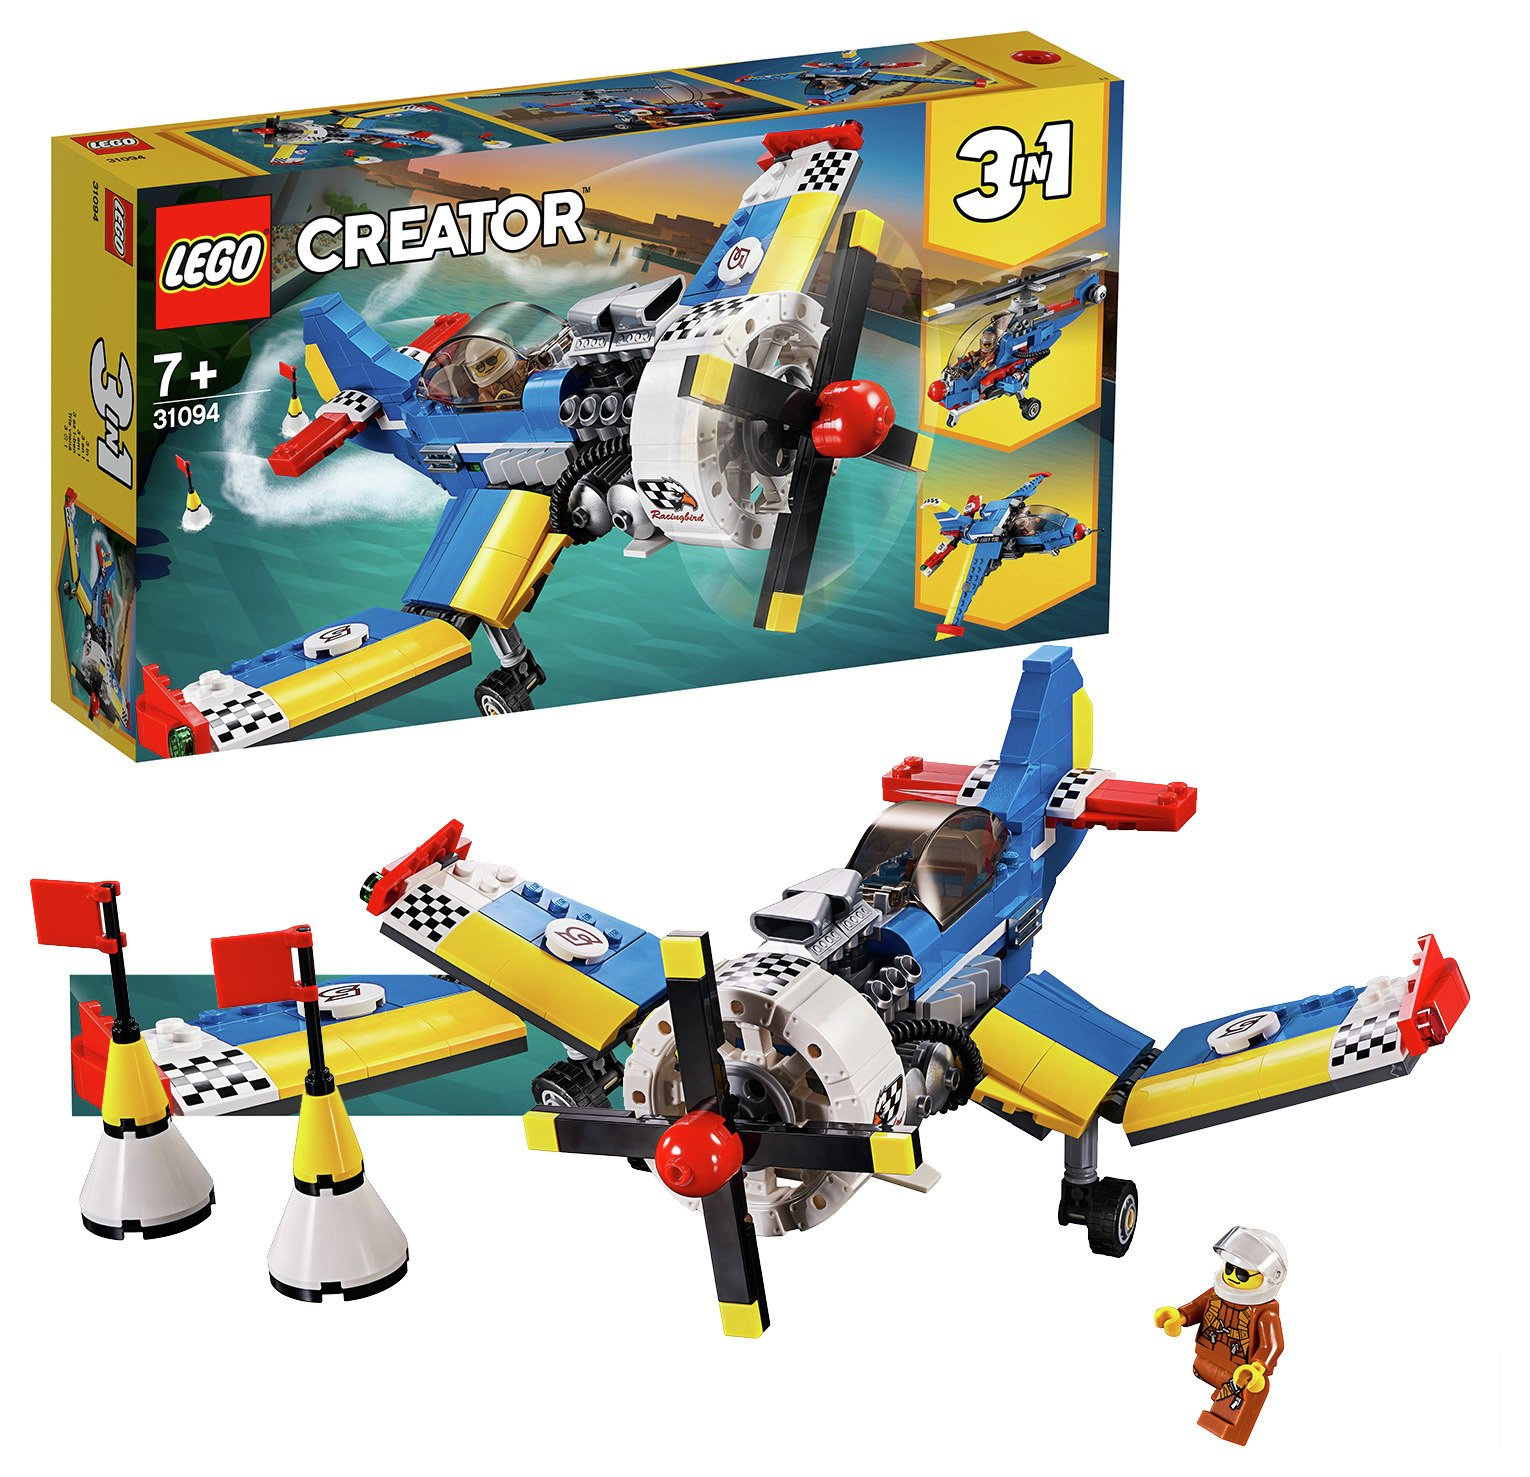 LEGO Creator Race Plane Toy Helicopter and Jet - 31094